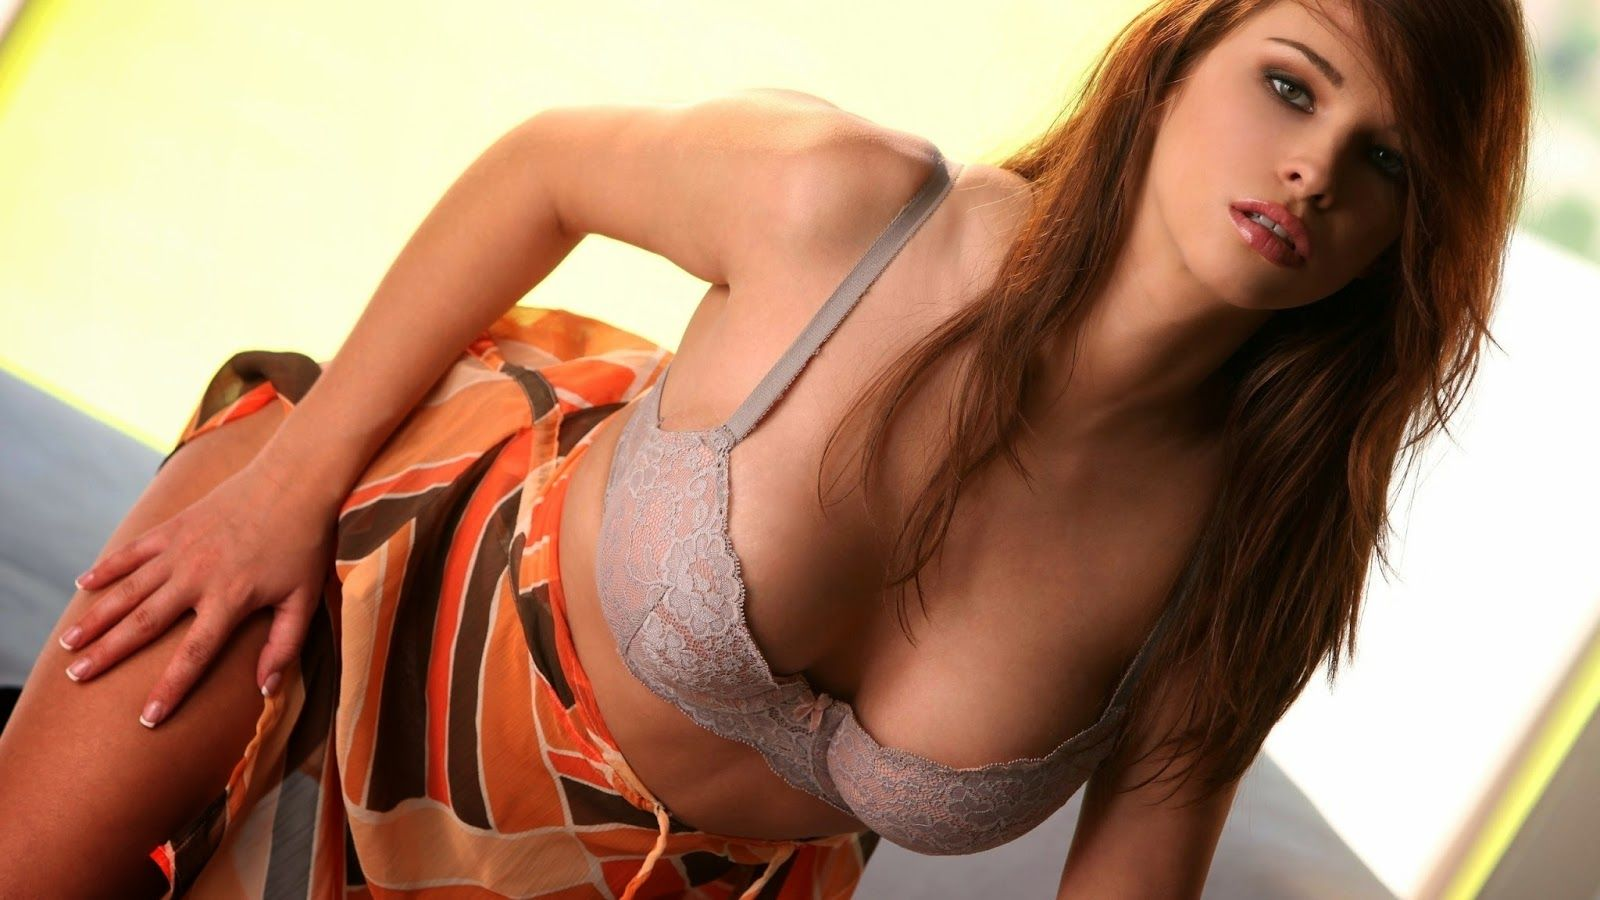 on our website you will find ever day only the best quality adult